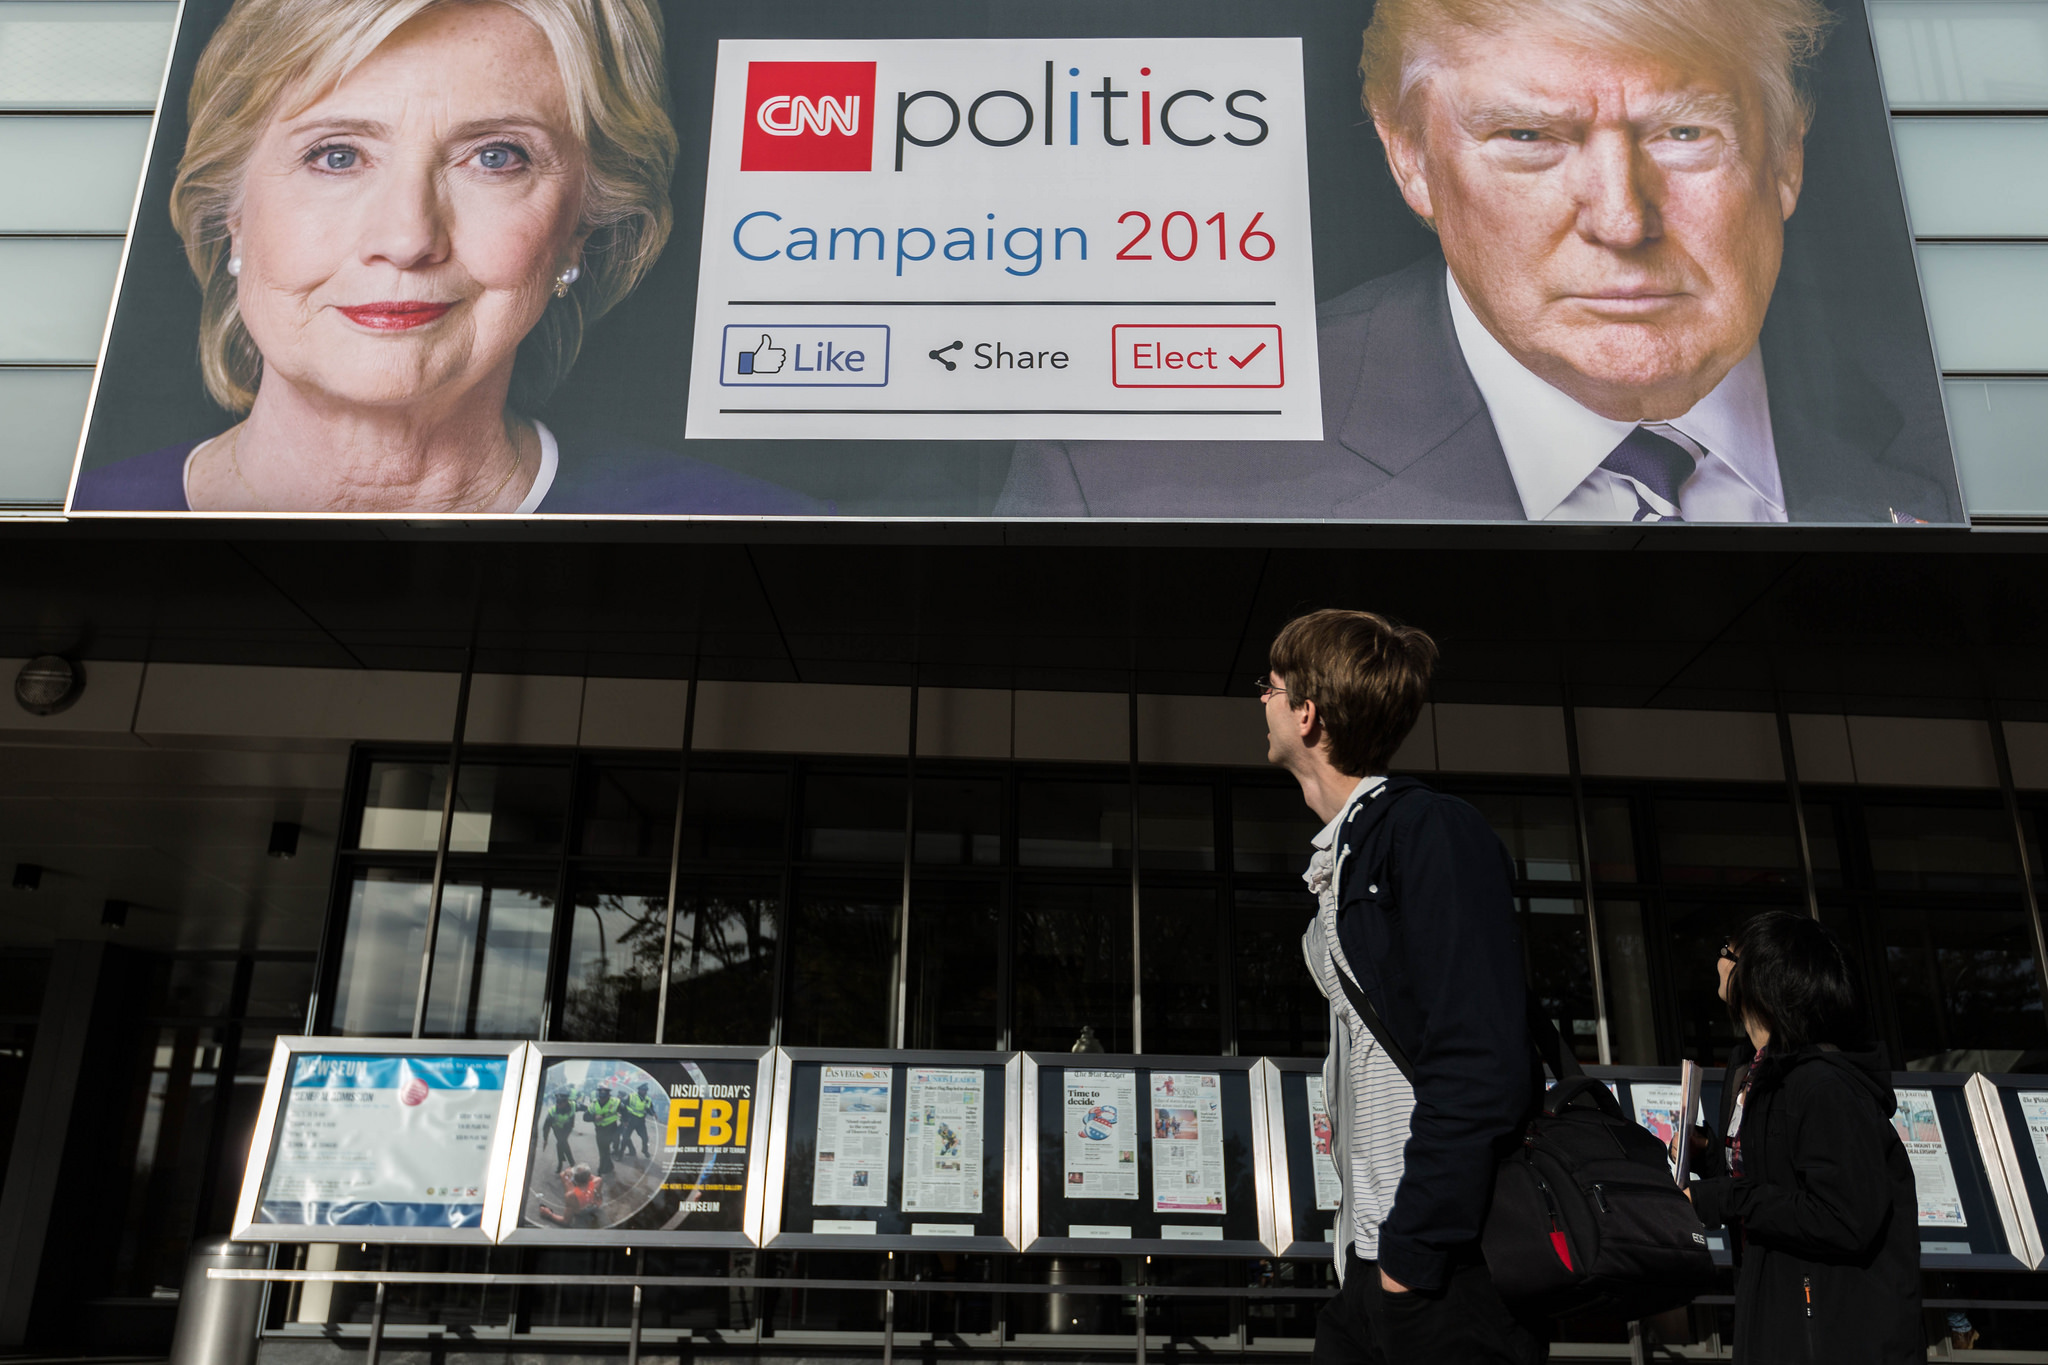 Election Day: The Newseum's Campaign 2016 exhibit